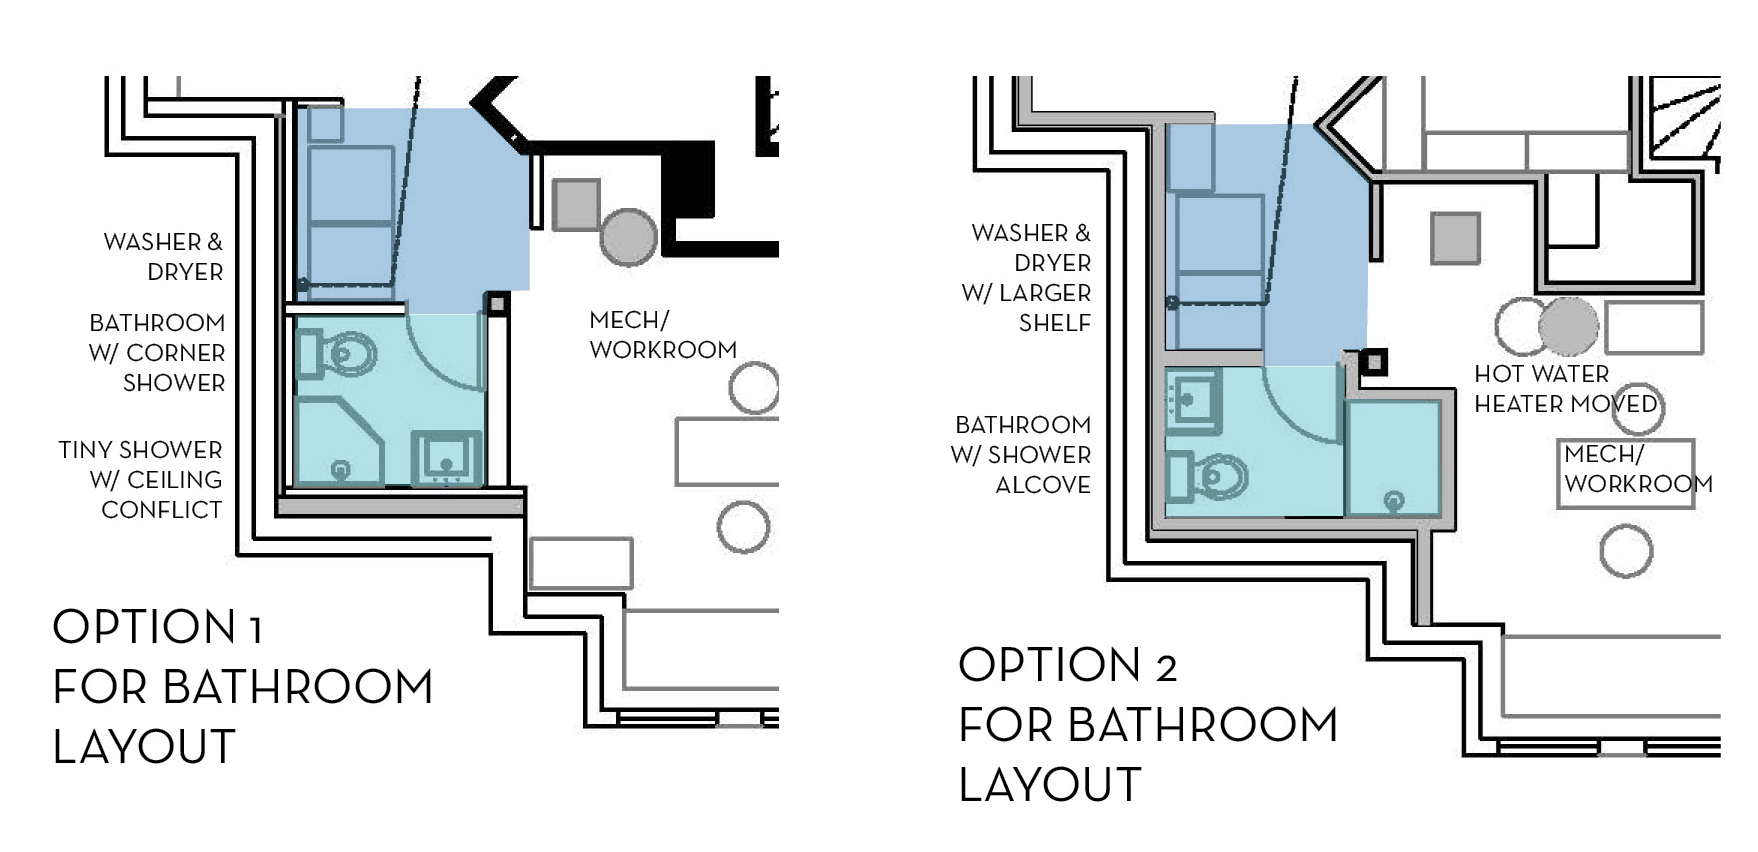 Bathroom Layout Options. Our Basement Part 7  Bathroom   Layout   Stately Kitsch